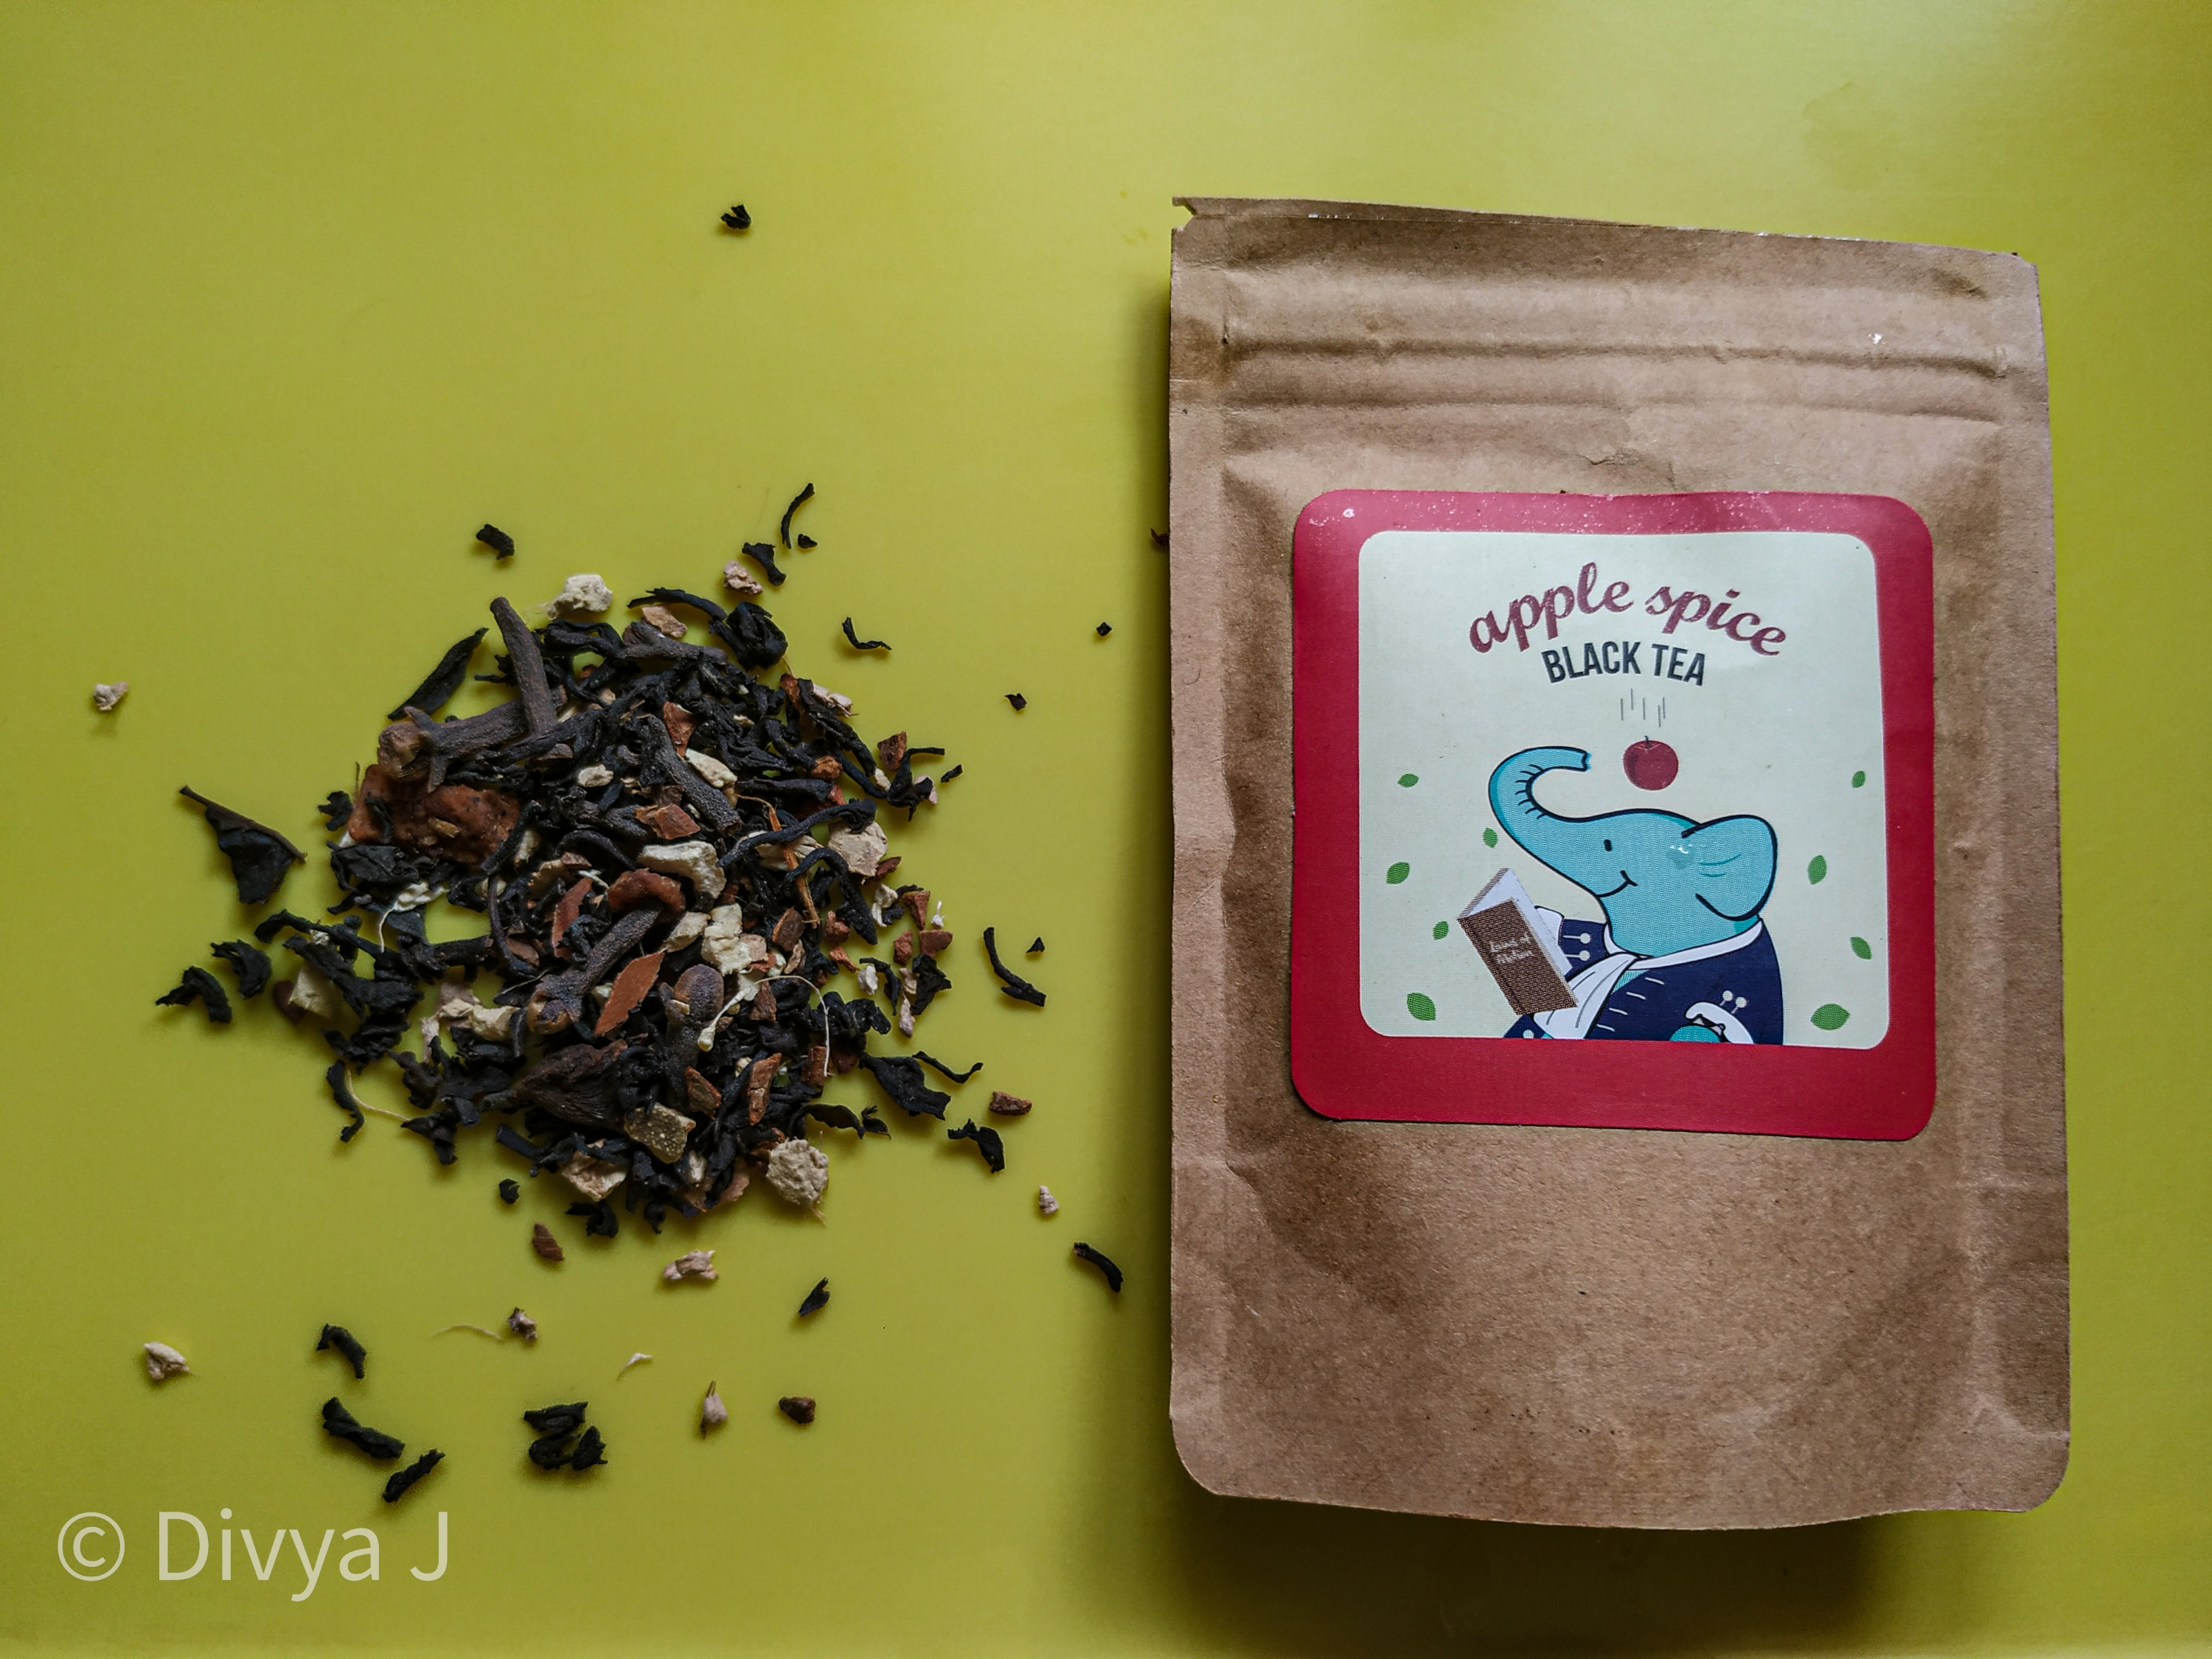 Tea trunk Apple spice black tea with sampler pack and the product